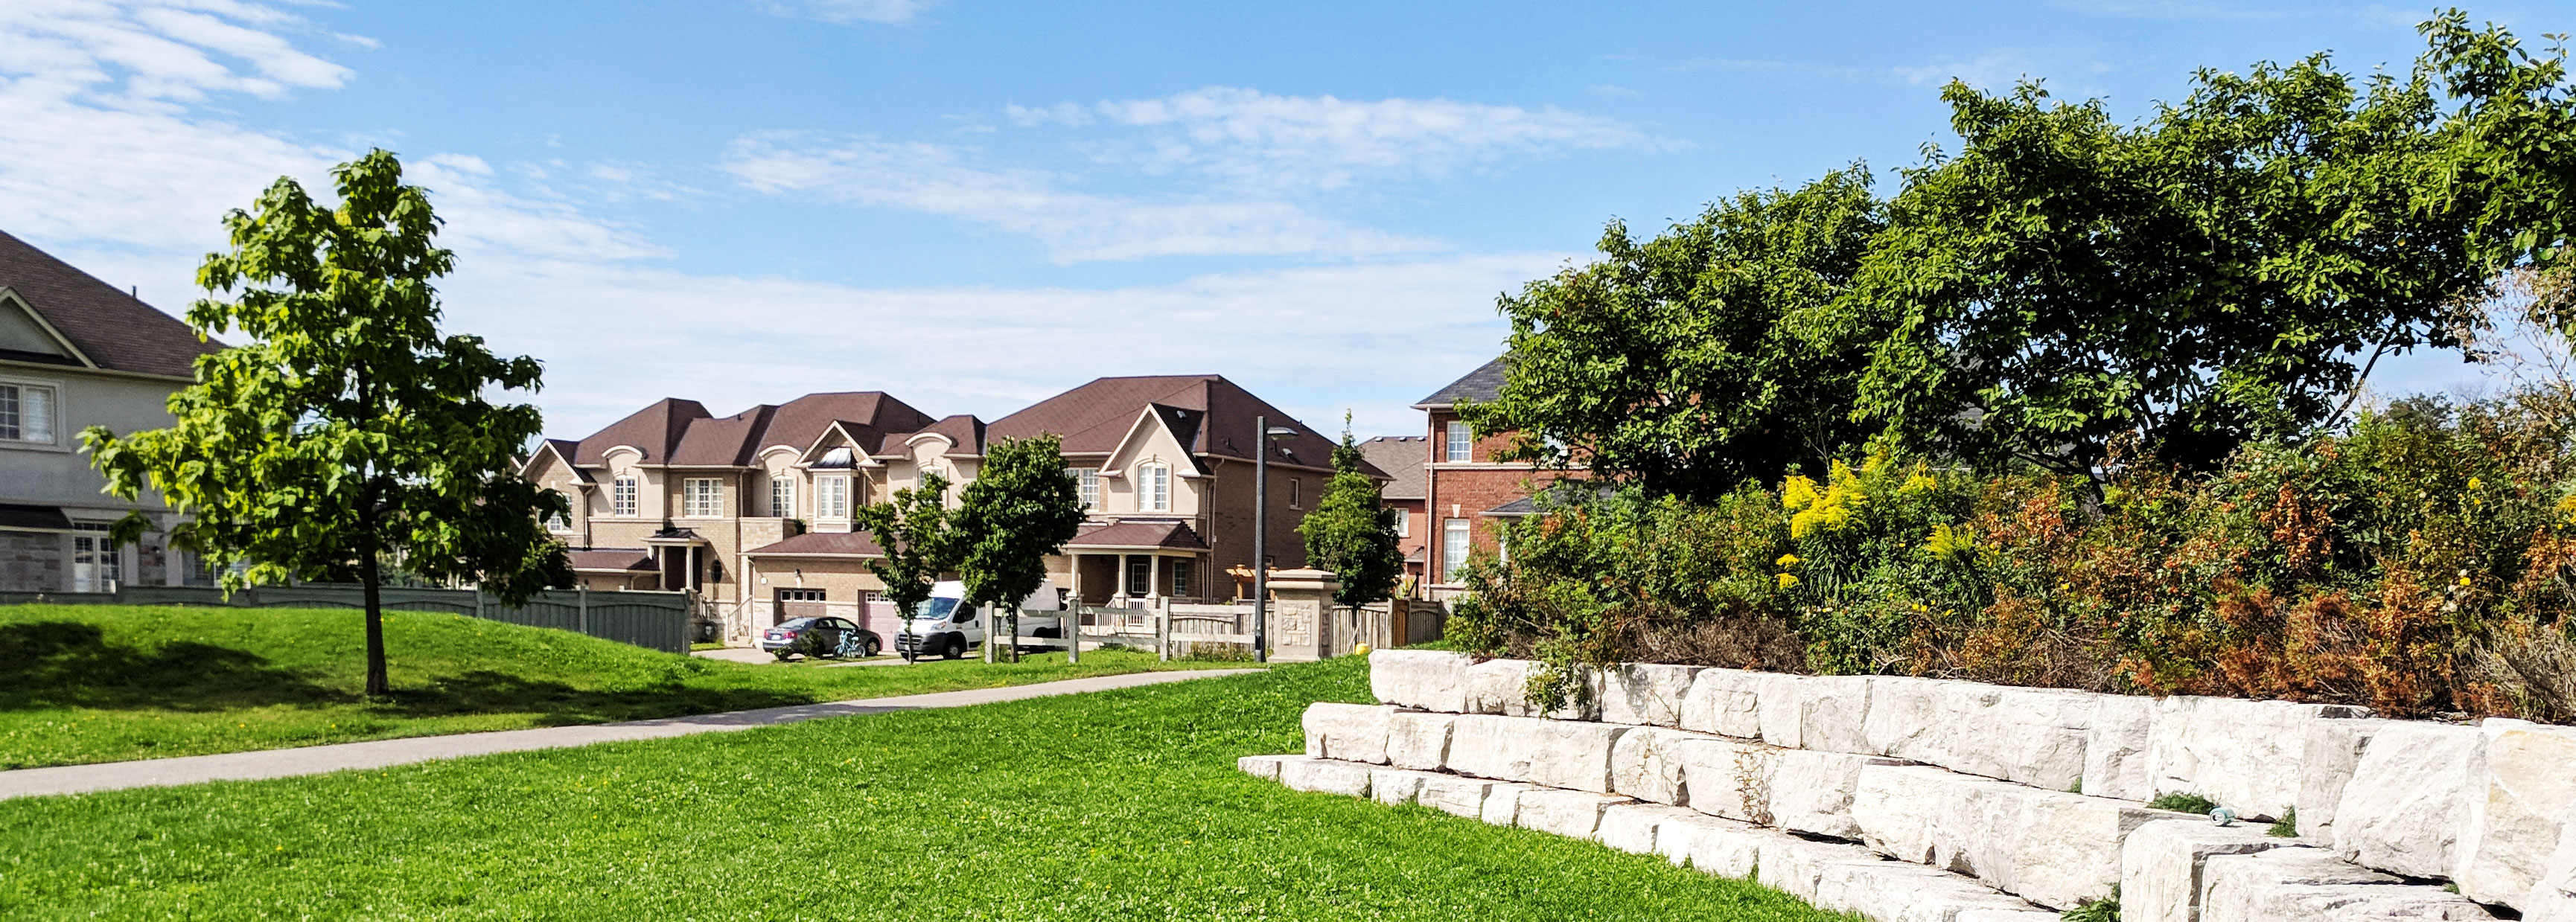 Thornhill Woods, a nice community in Thornhill, Ontario